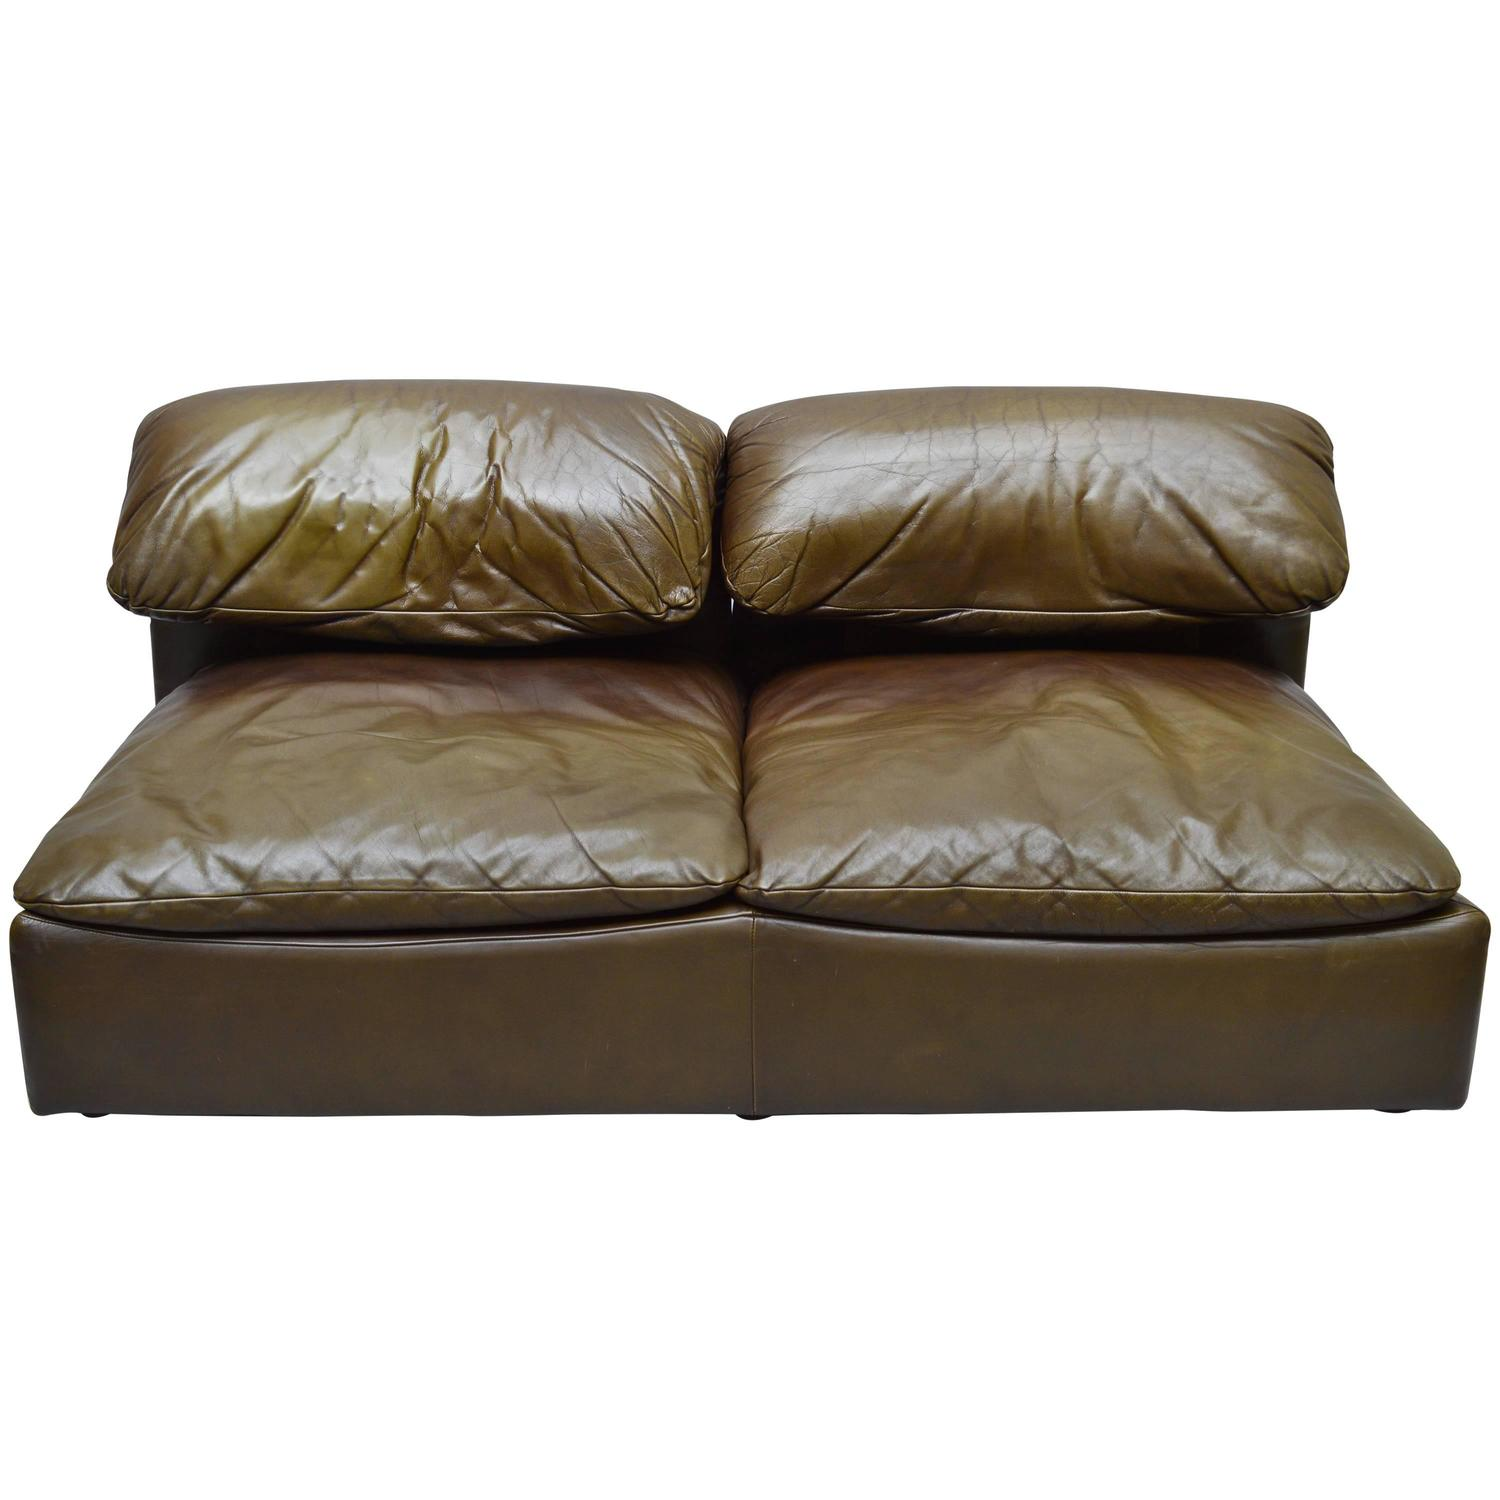 Roche bobois floor cushion seating Rectangular Floor 1stdibs 1970s Roche Bobois Leather Twoseat Sofa At 1stdibs